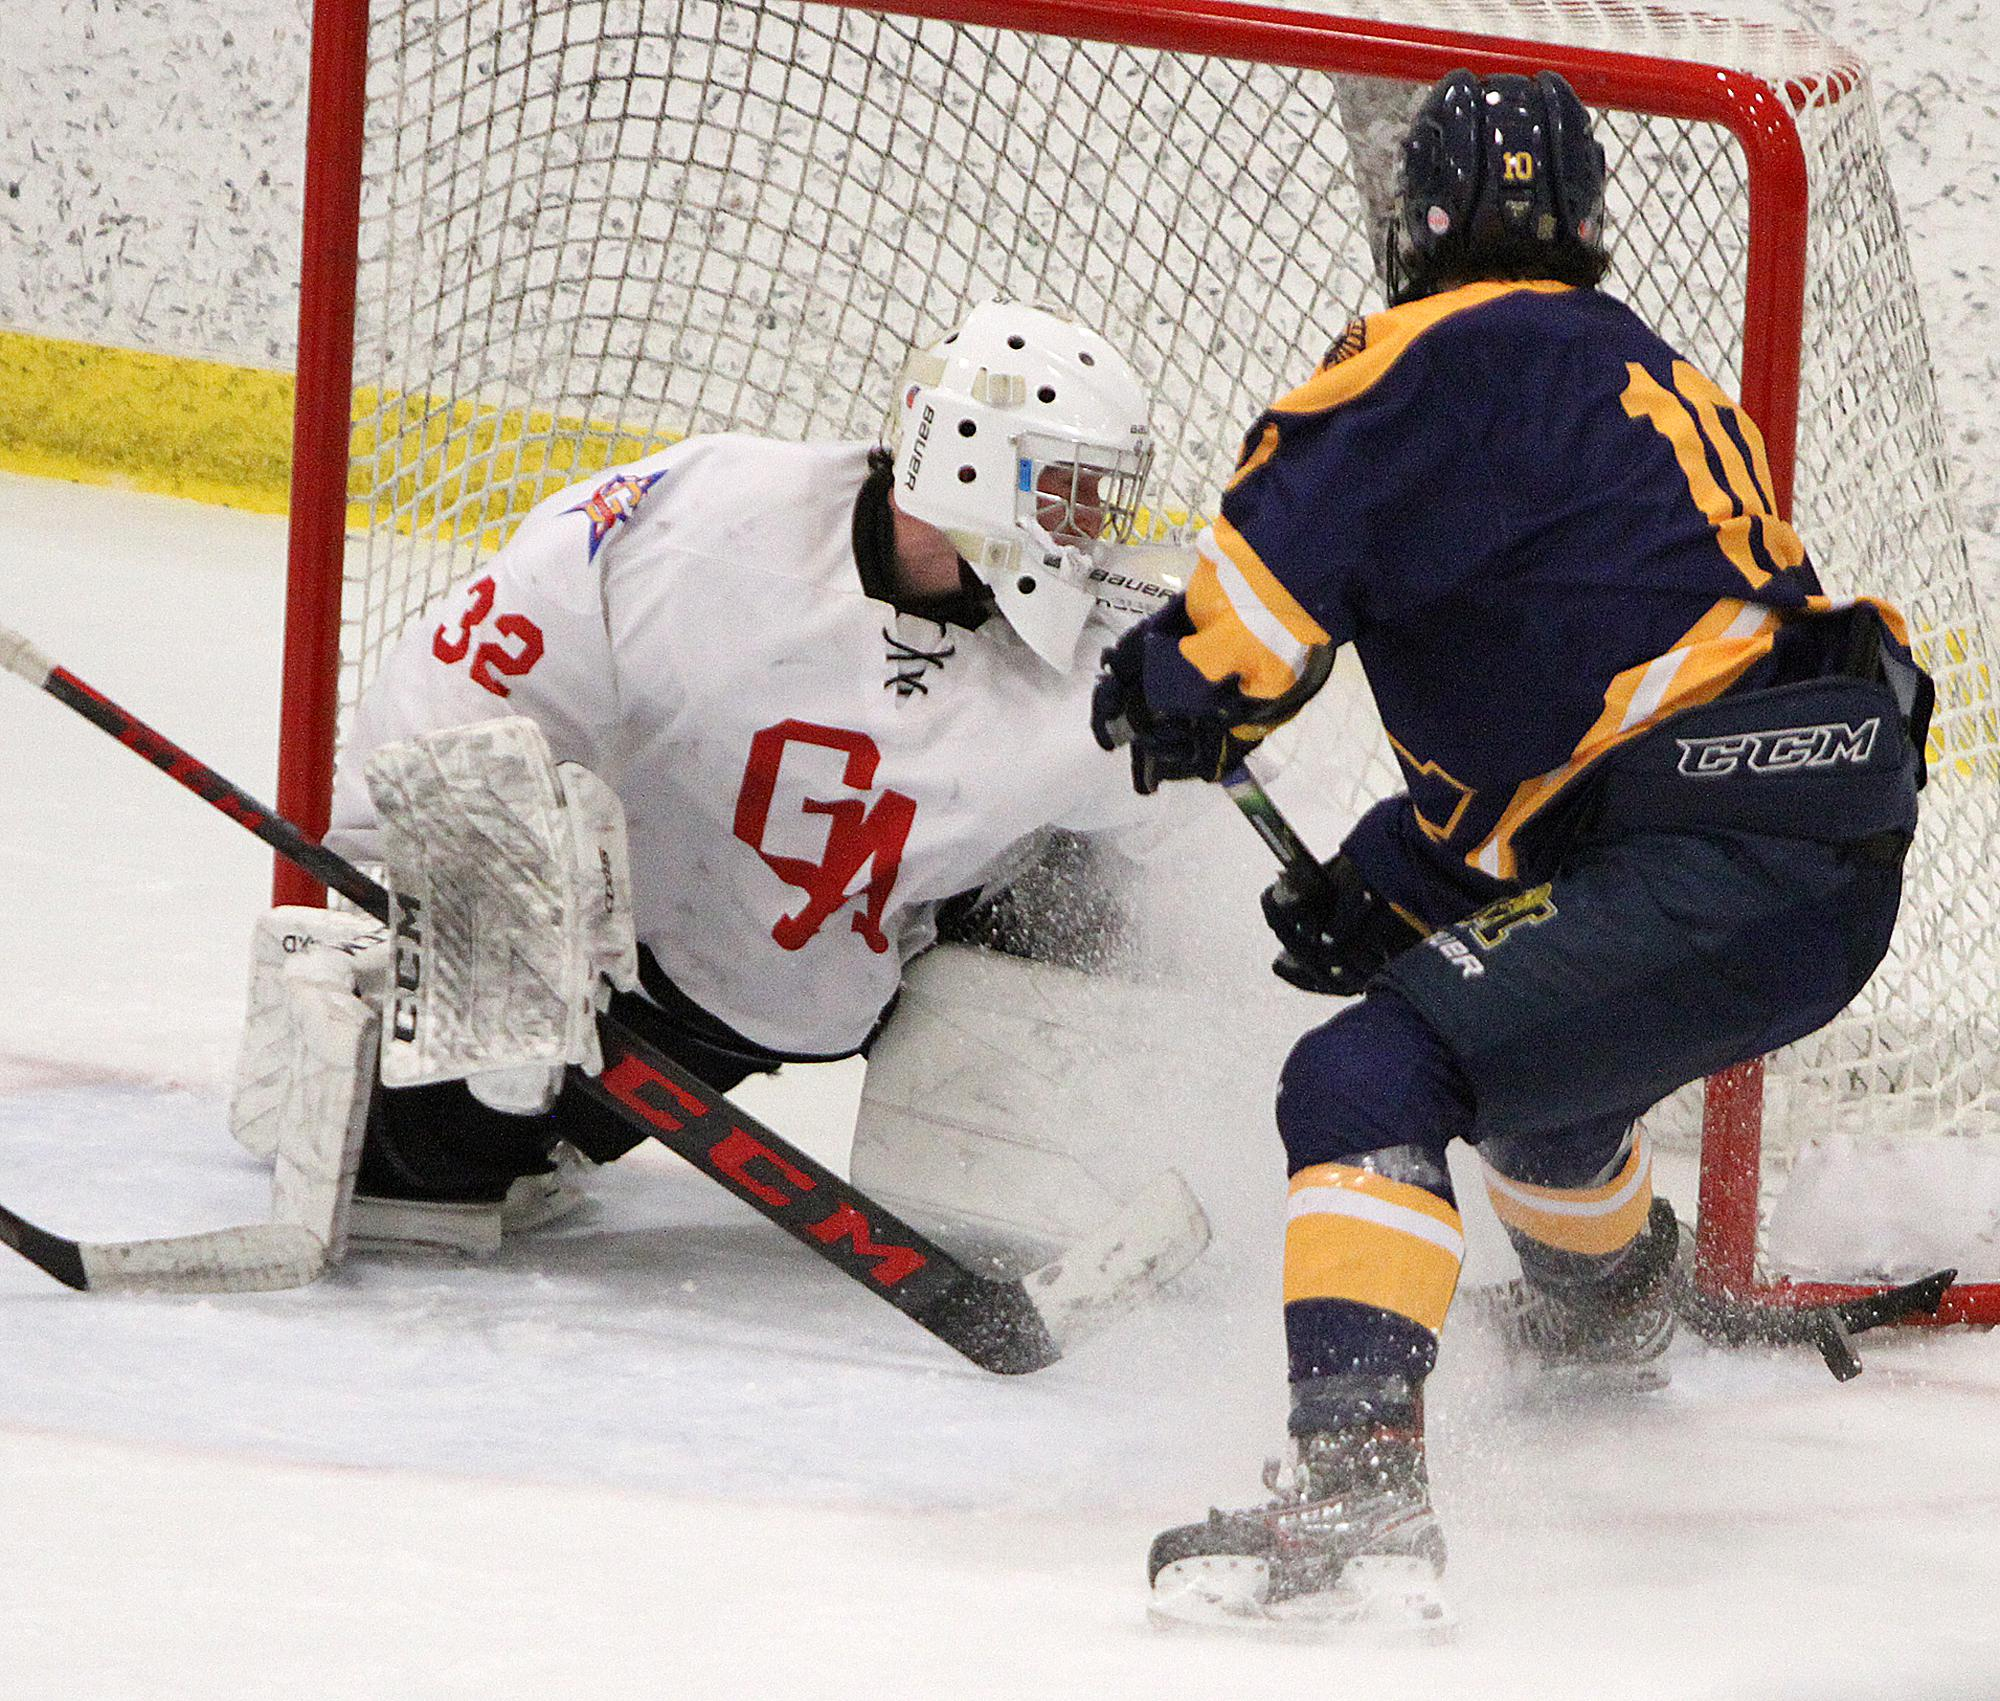 Mahtomedi senior forward Adam Johnson is stopped on a prime scoring chance by Gentry Academy senior goalie Alex Timmons in the third period. Johnson finished with one goal, and Timmons made 28 saves Thursday. Photo by Drew Herron, SportsEngine